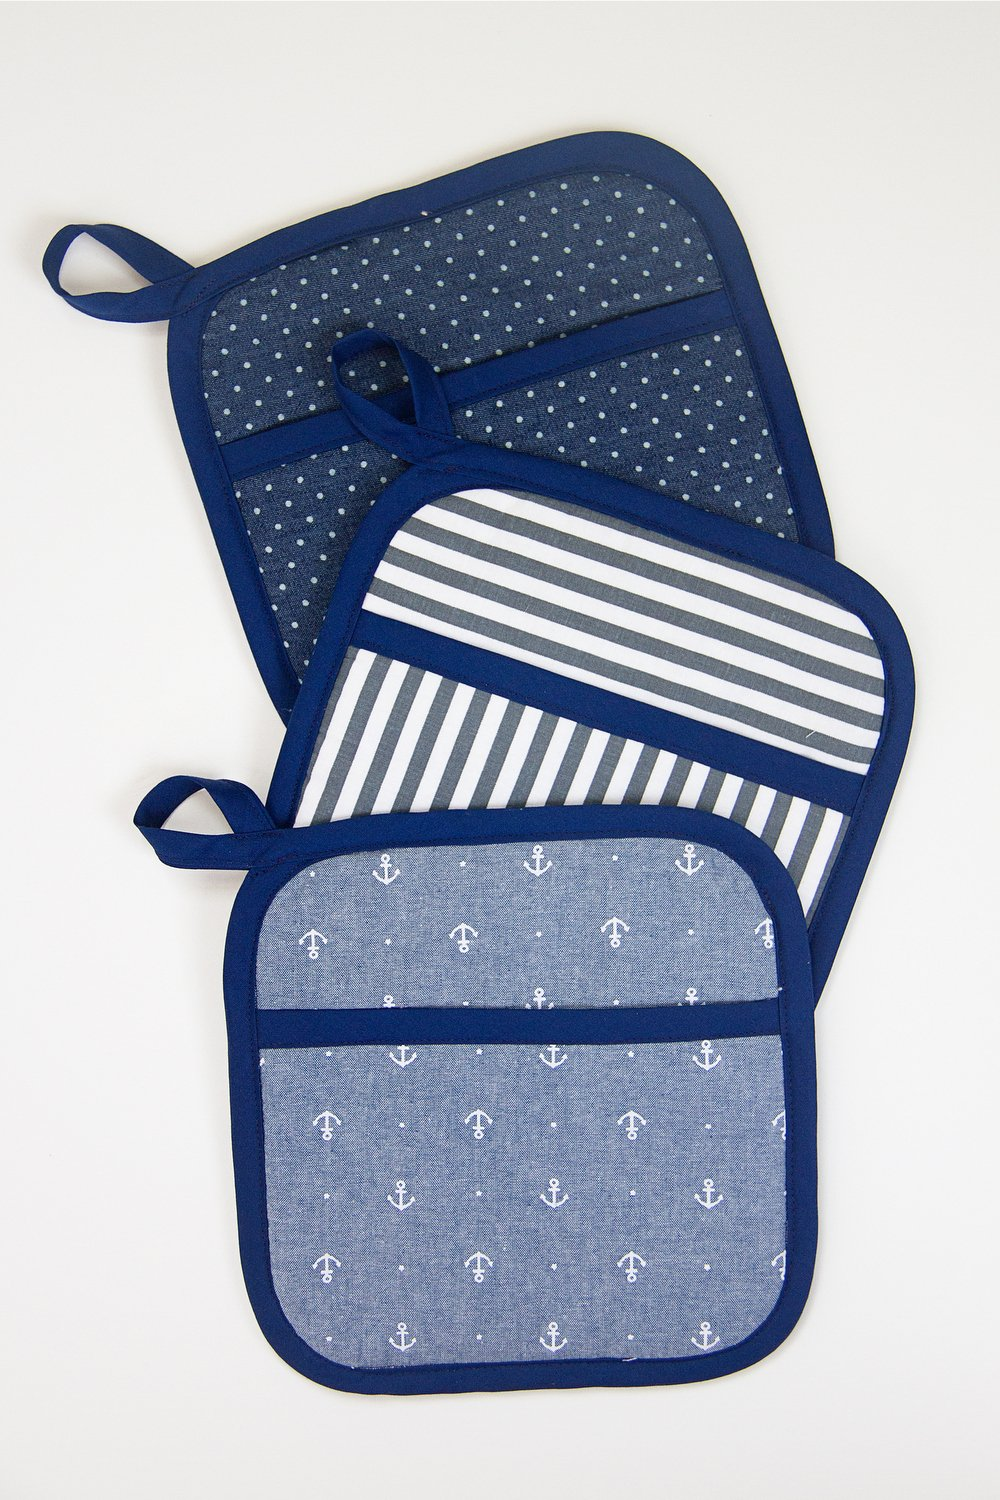 Square hot pads…with hand pockets